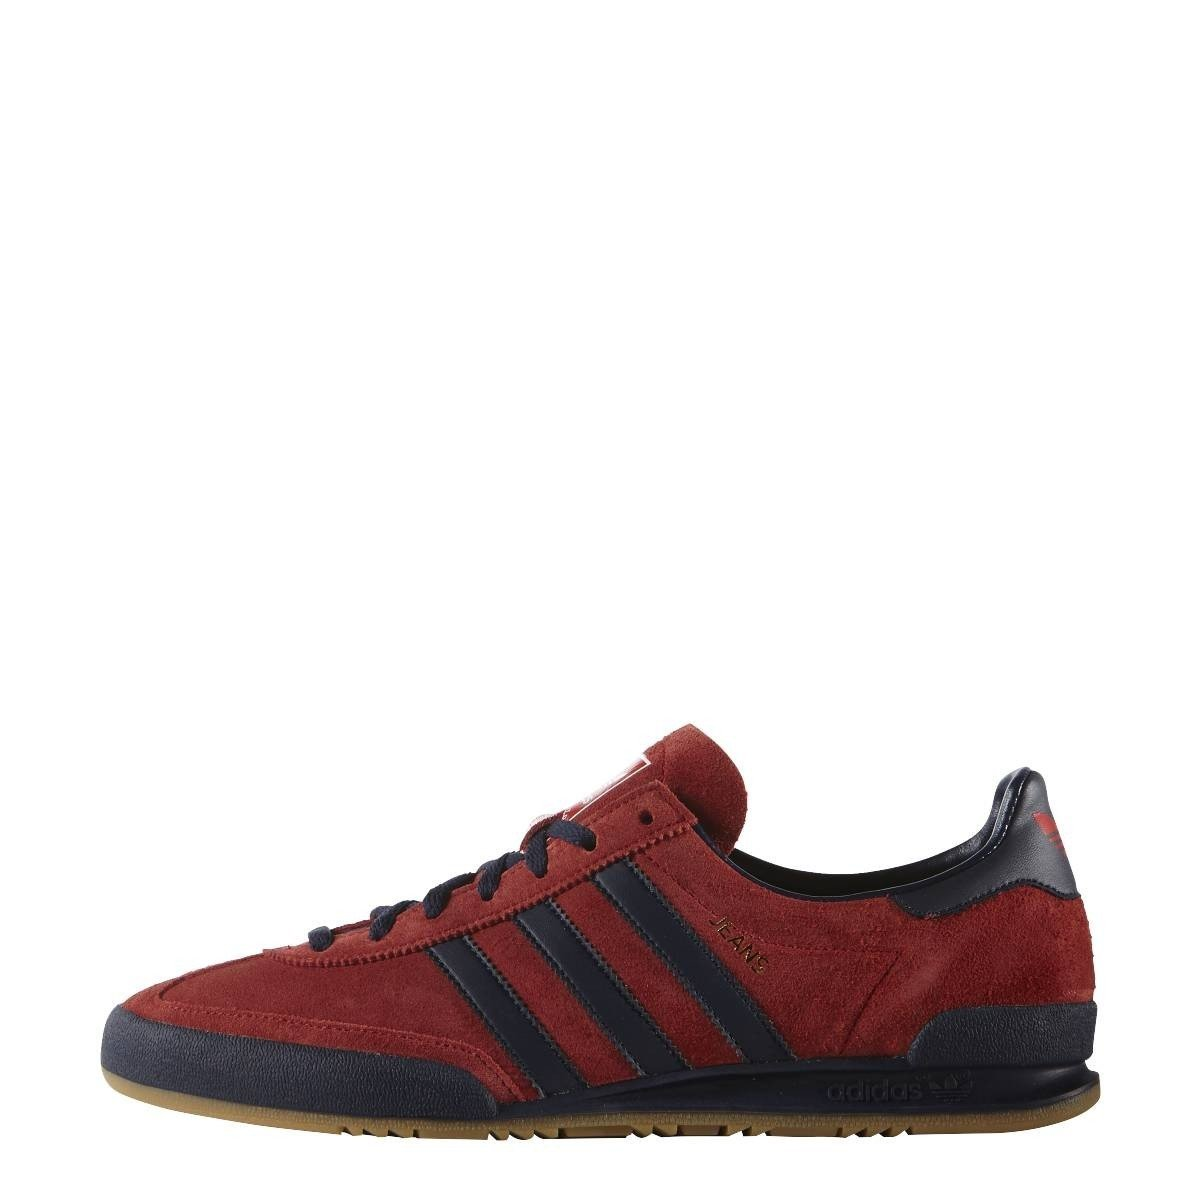 premium selection 750de a4568 adidas Mens Originals Mens Jeans MKII Trainers in Red - UK 6  Amazon.co.uk   Shoes   Bags